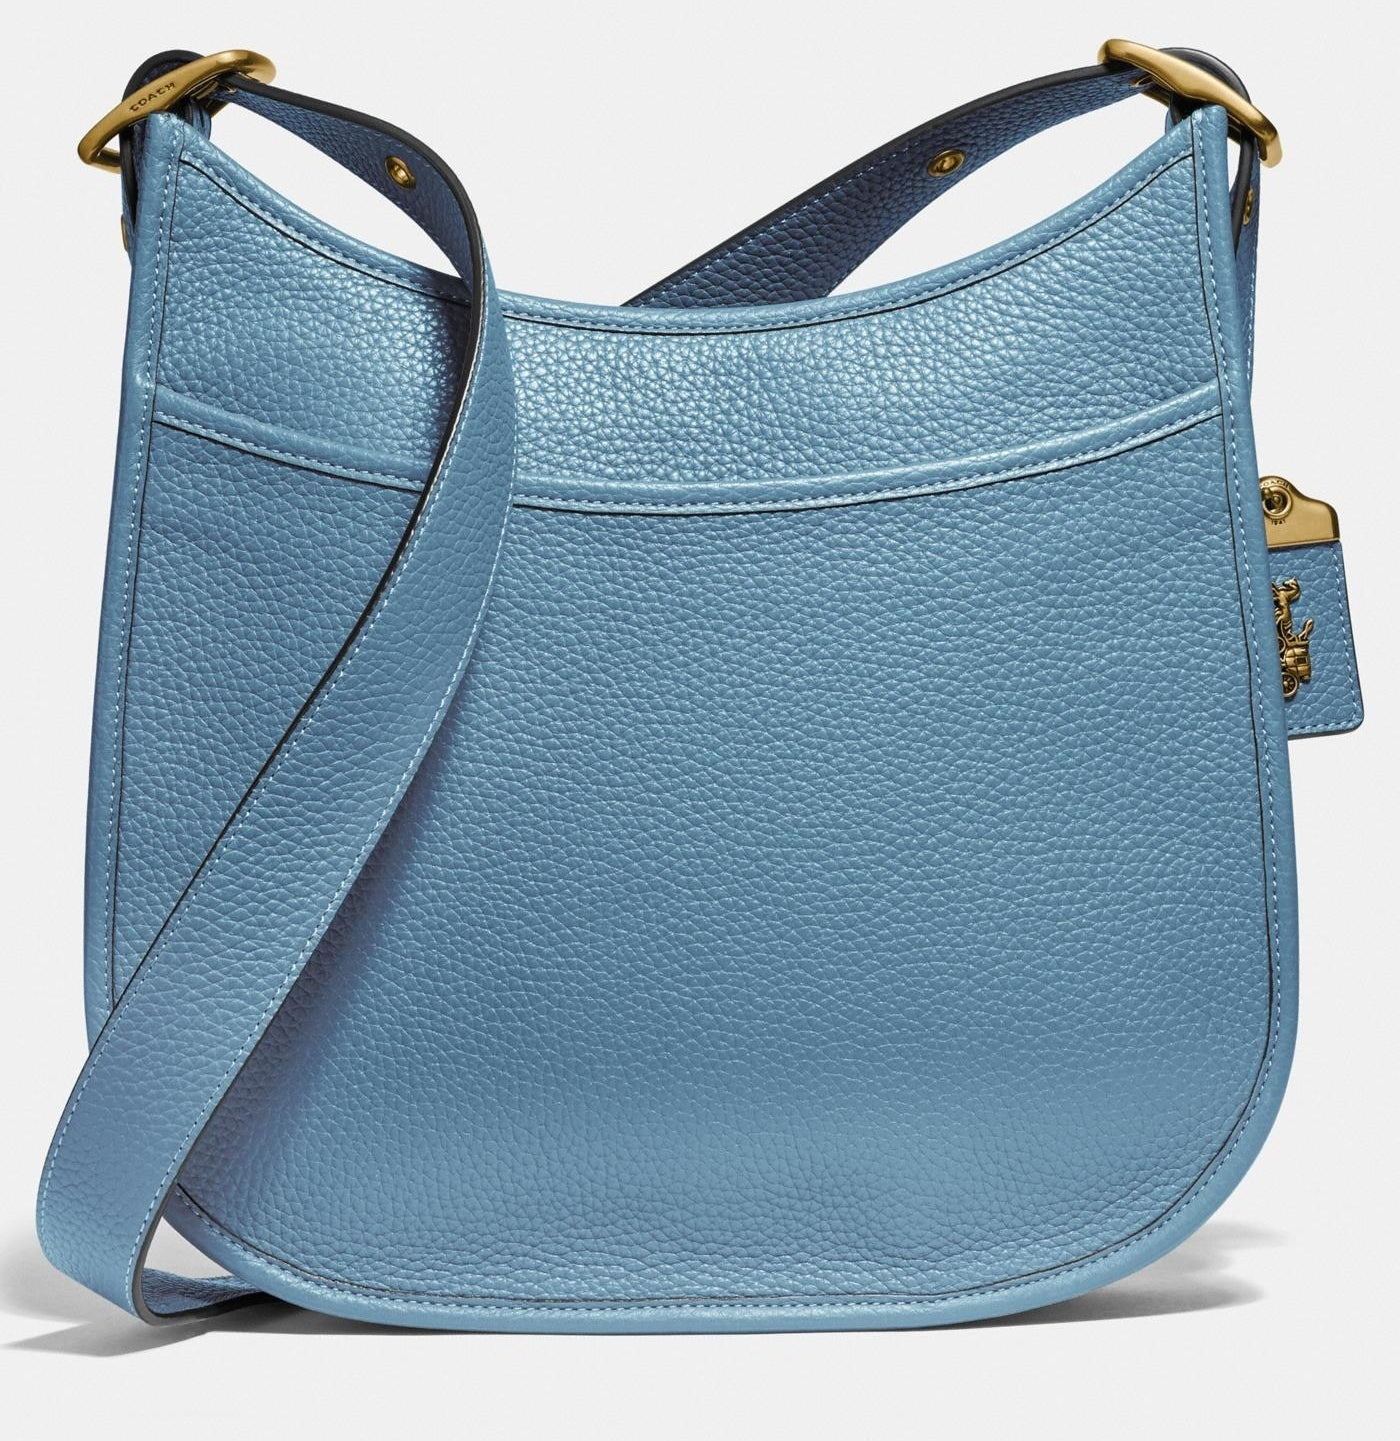 A pacific blue crossbody bag with brass buckles